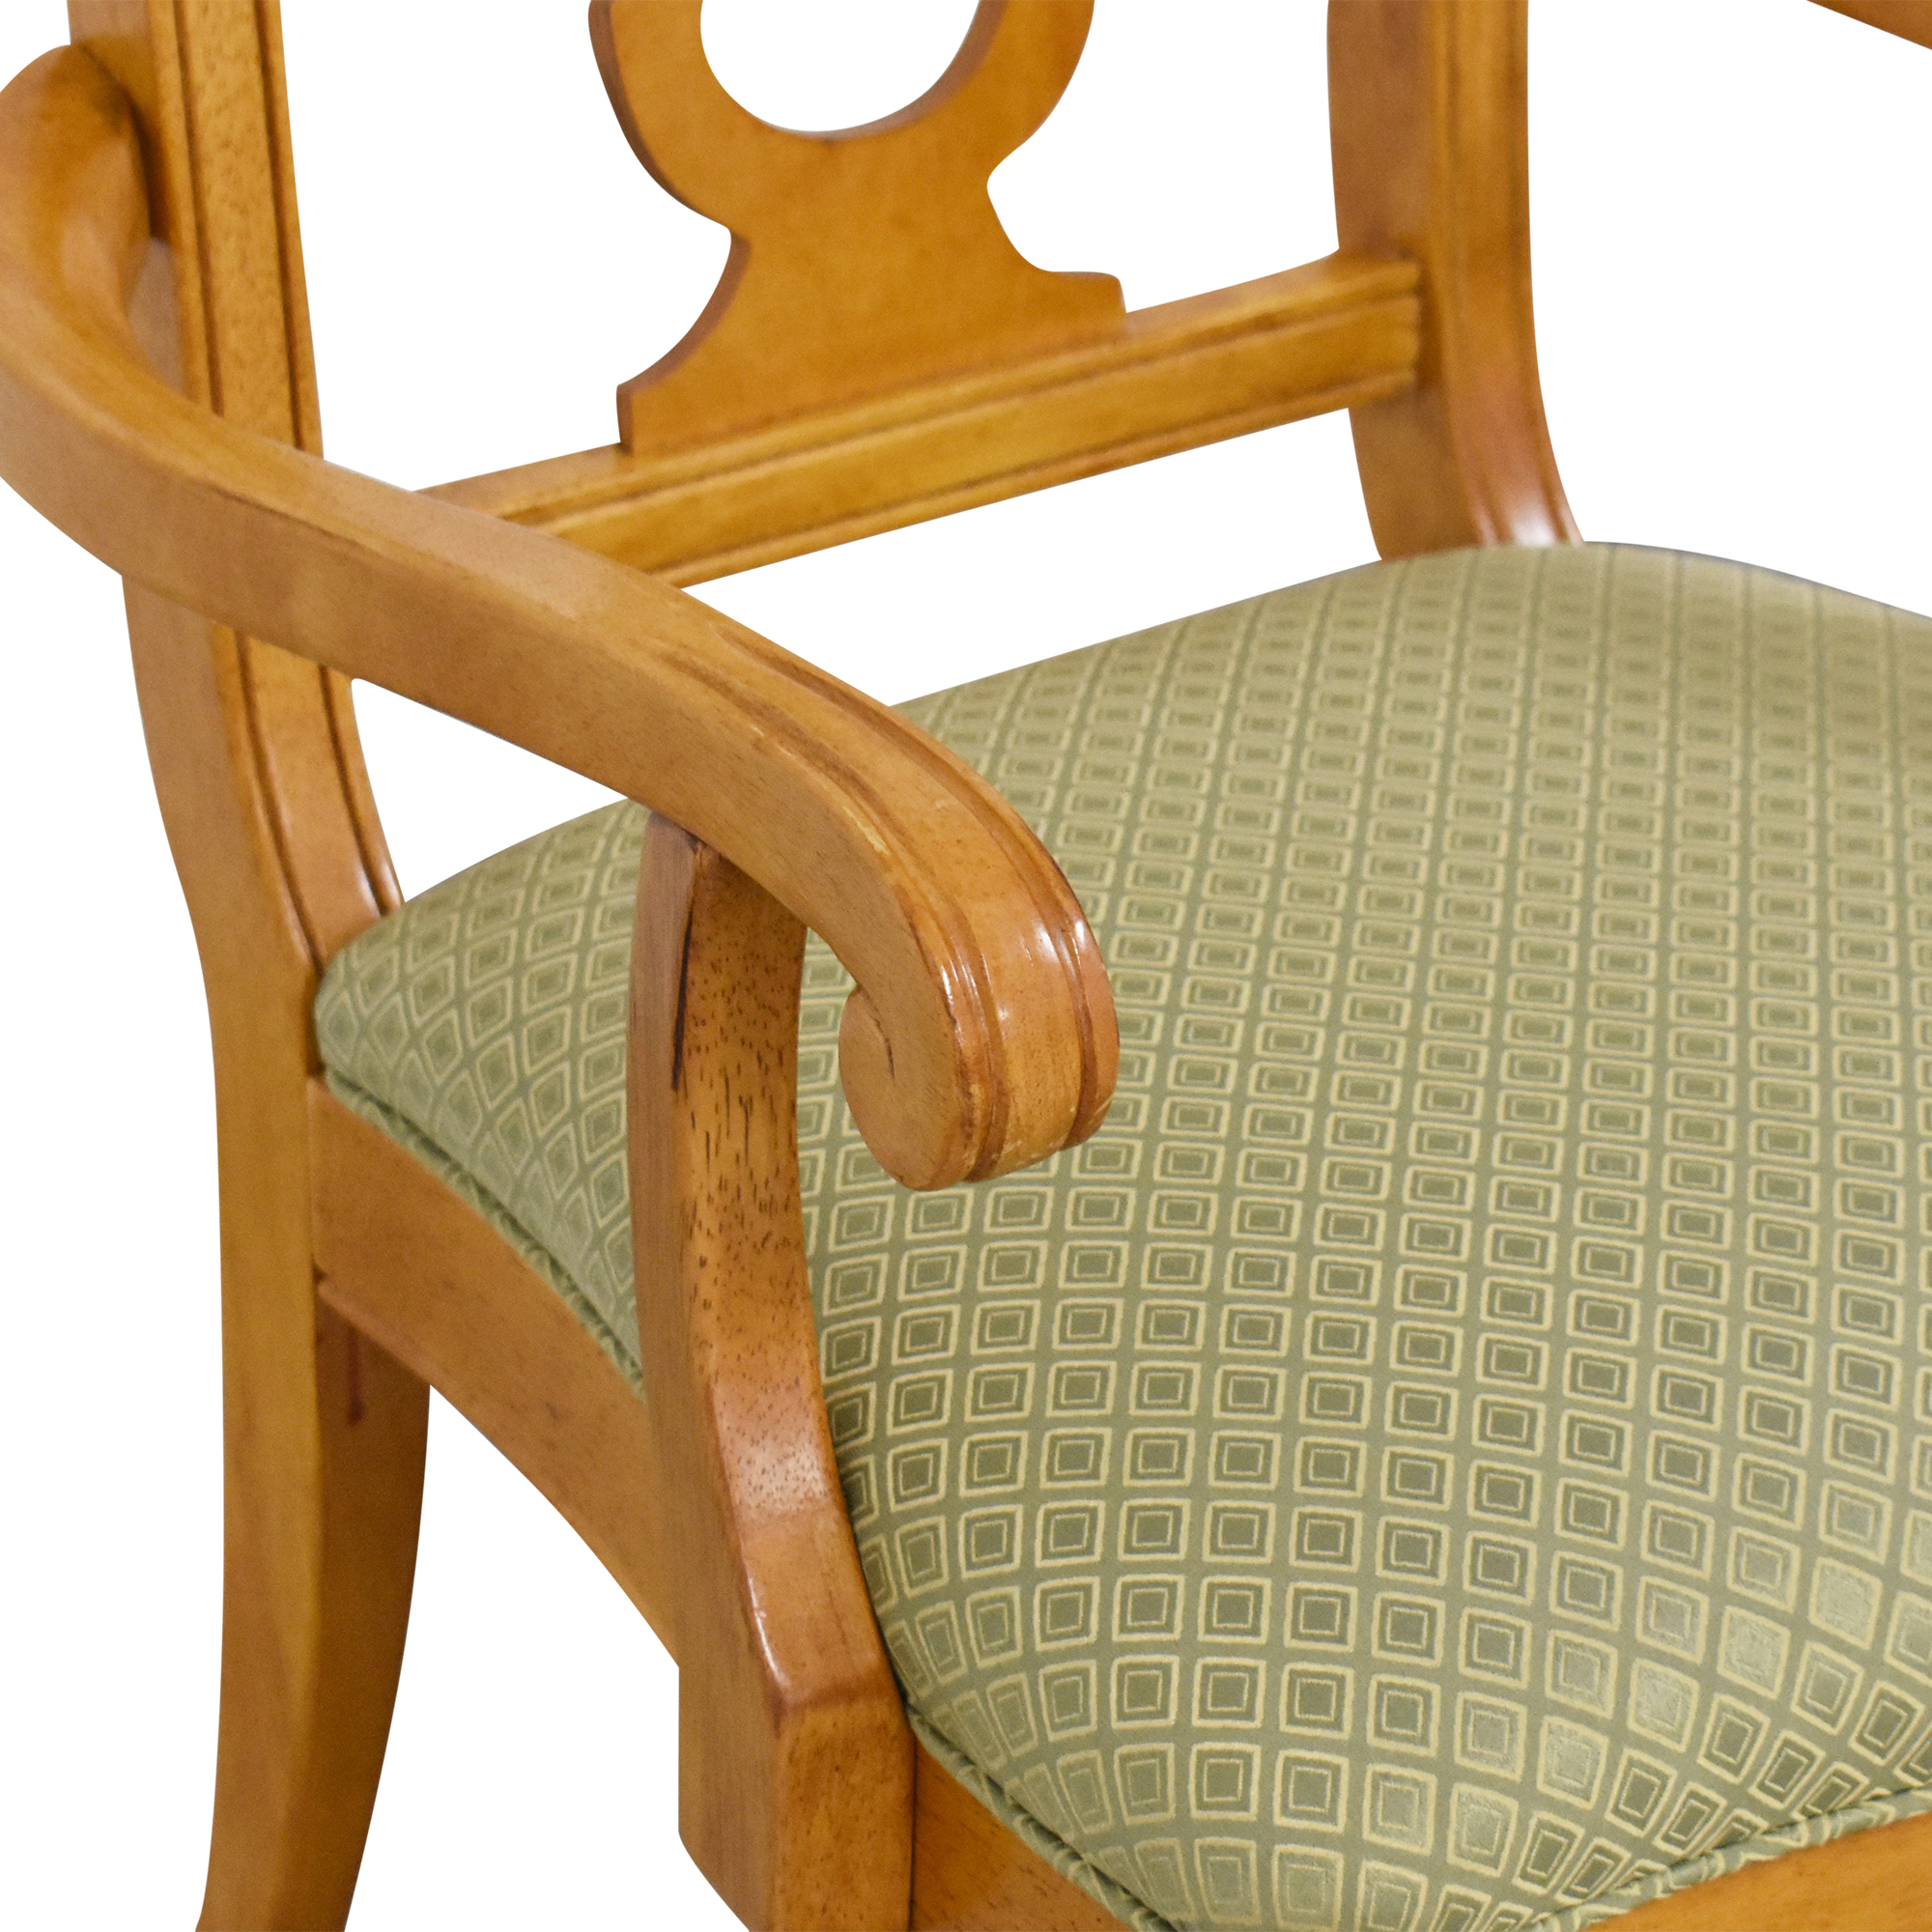 Universal Furniture Universal Furniture Upholstered Dining Chairs used